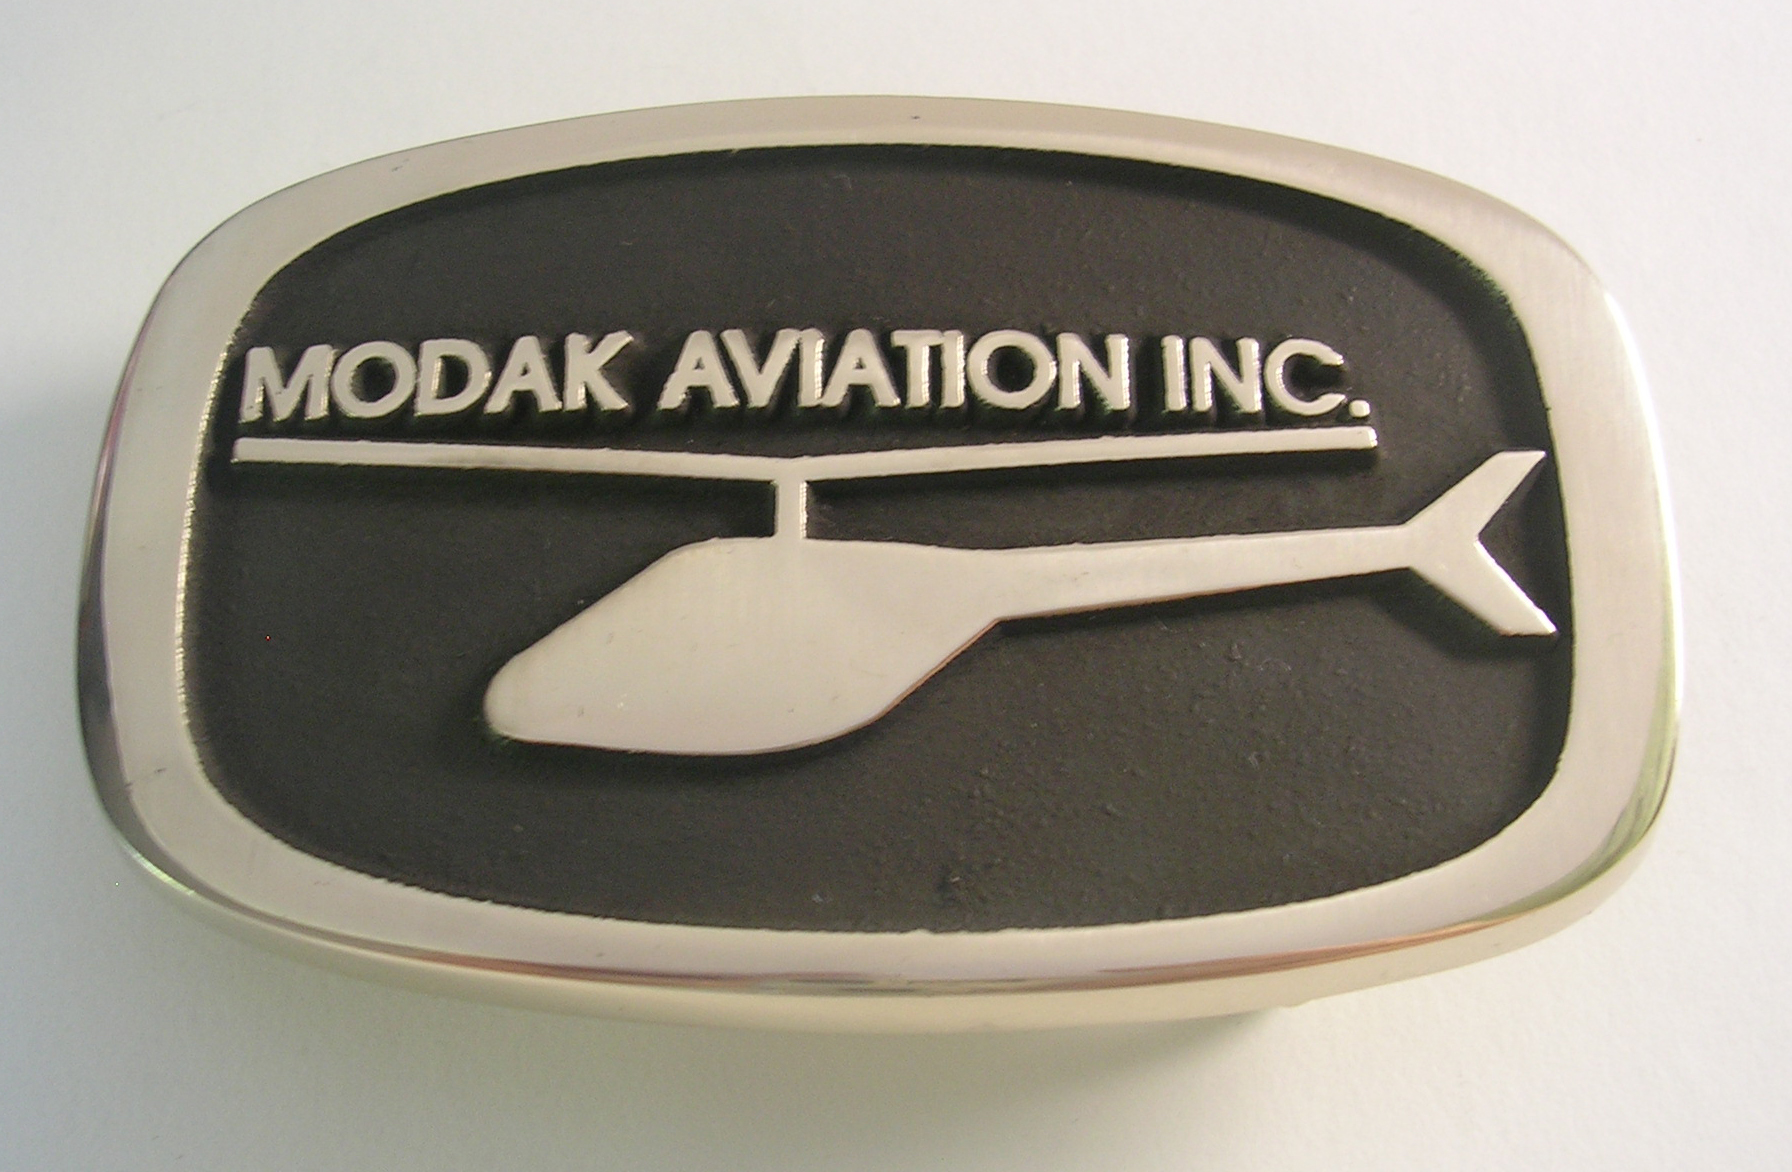 Modak Aviation buckle